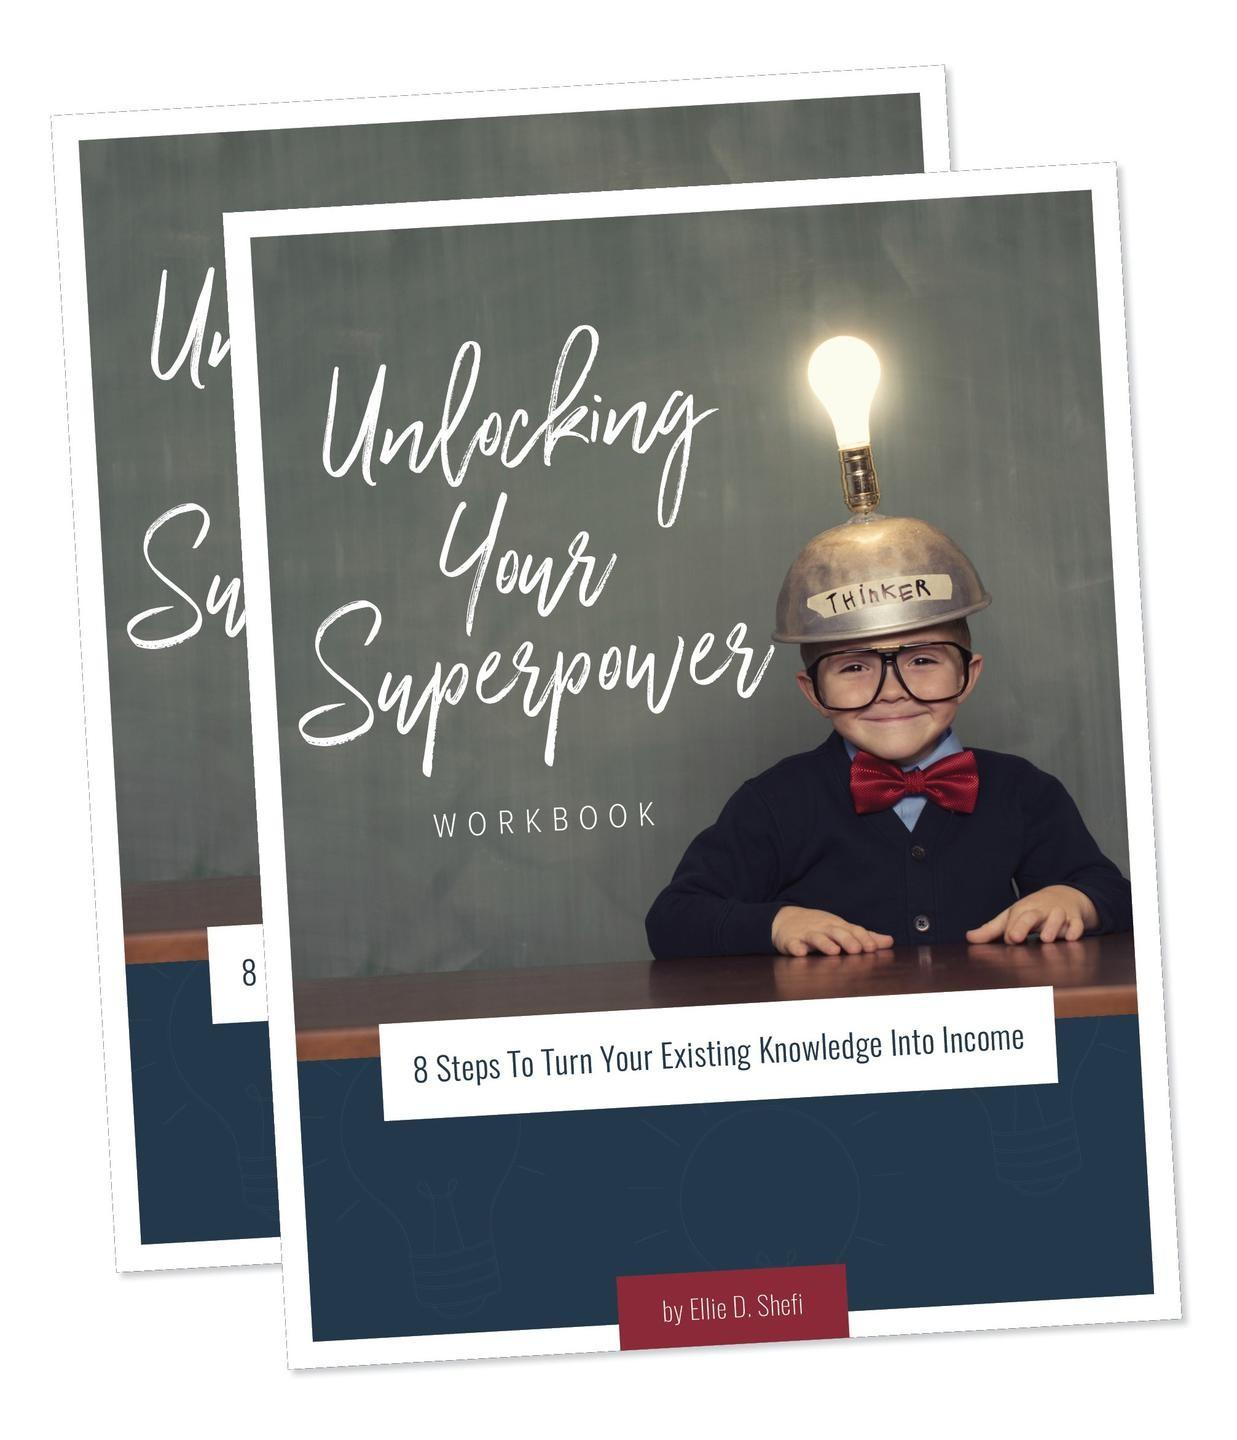 Unlocking Your Superpower: 8 Steps to Turn Your Existing Knowledge Into Income Workbook